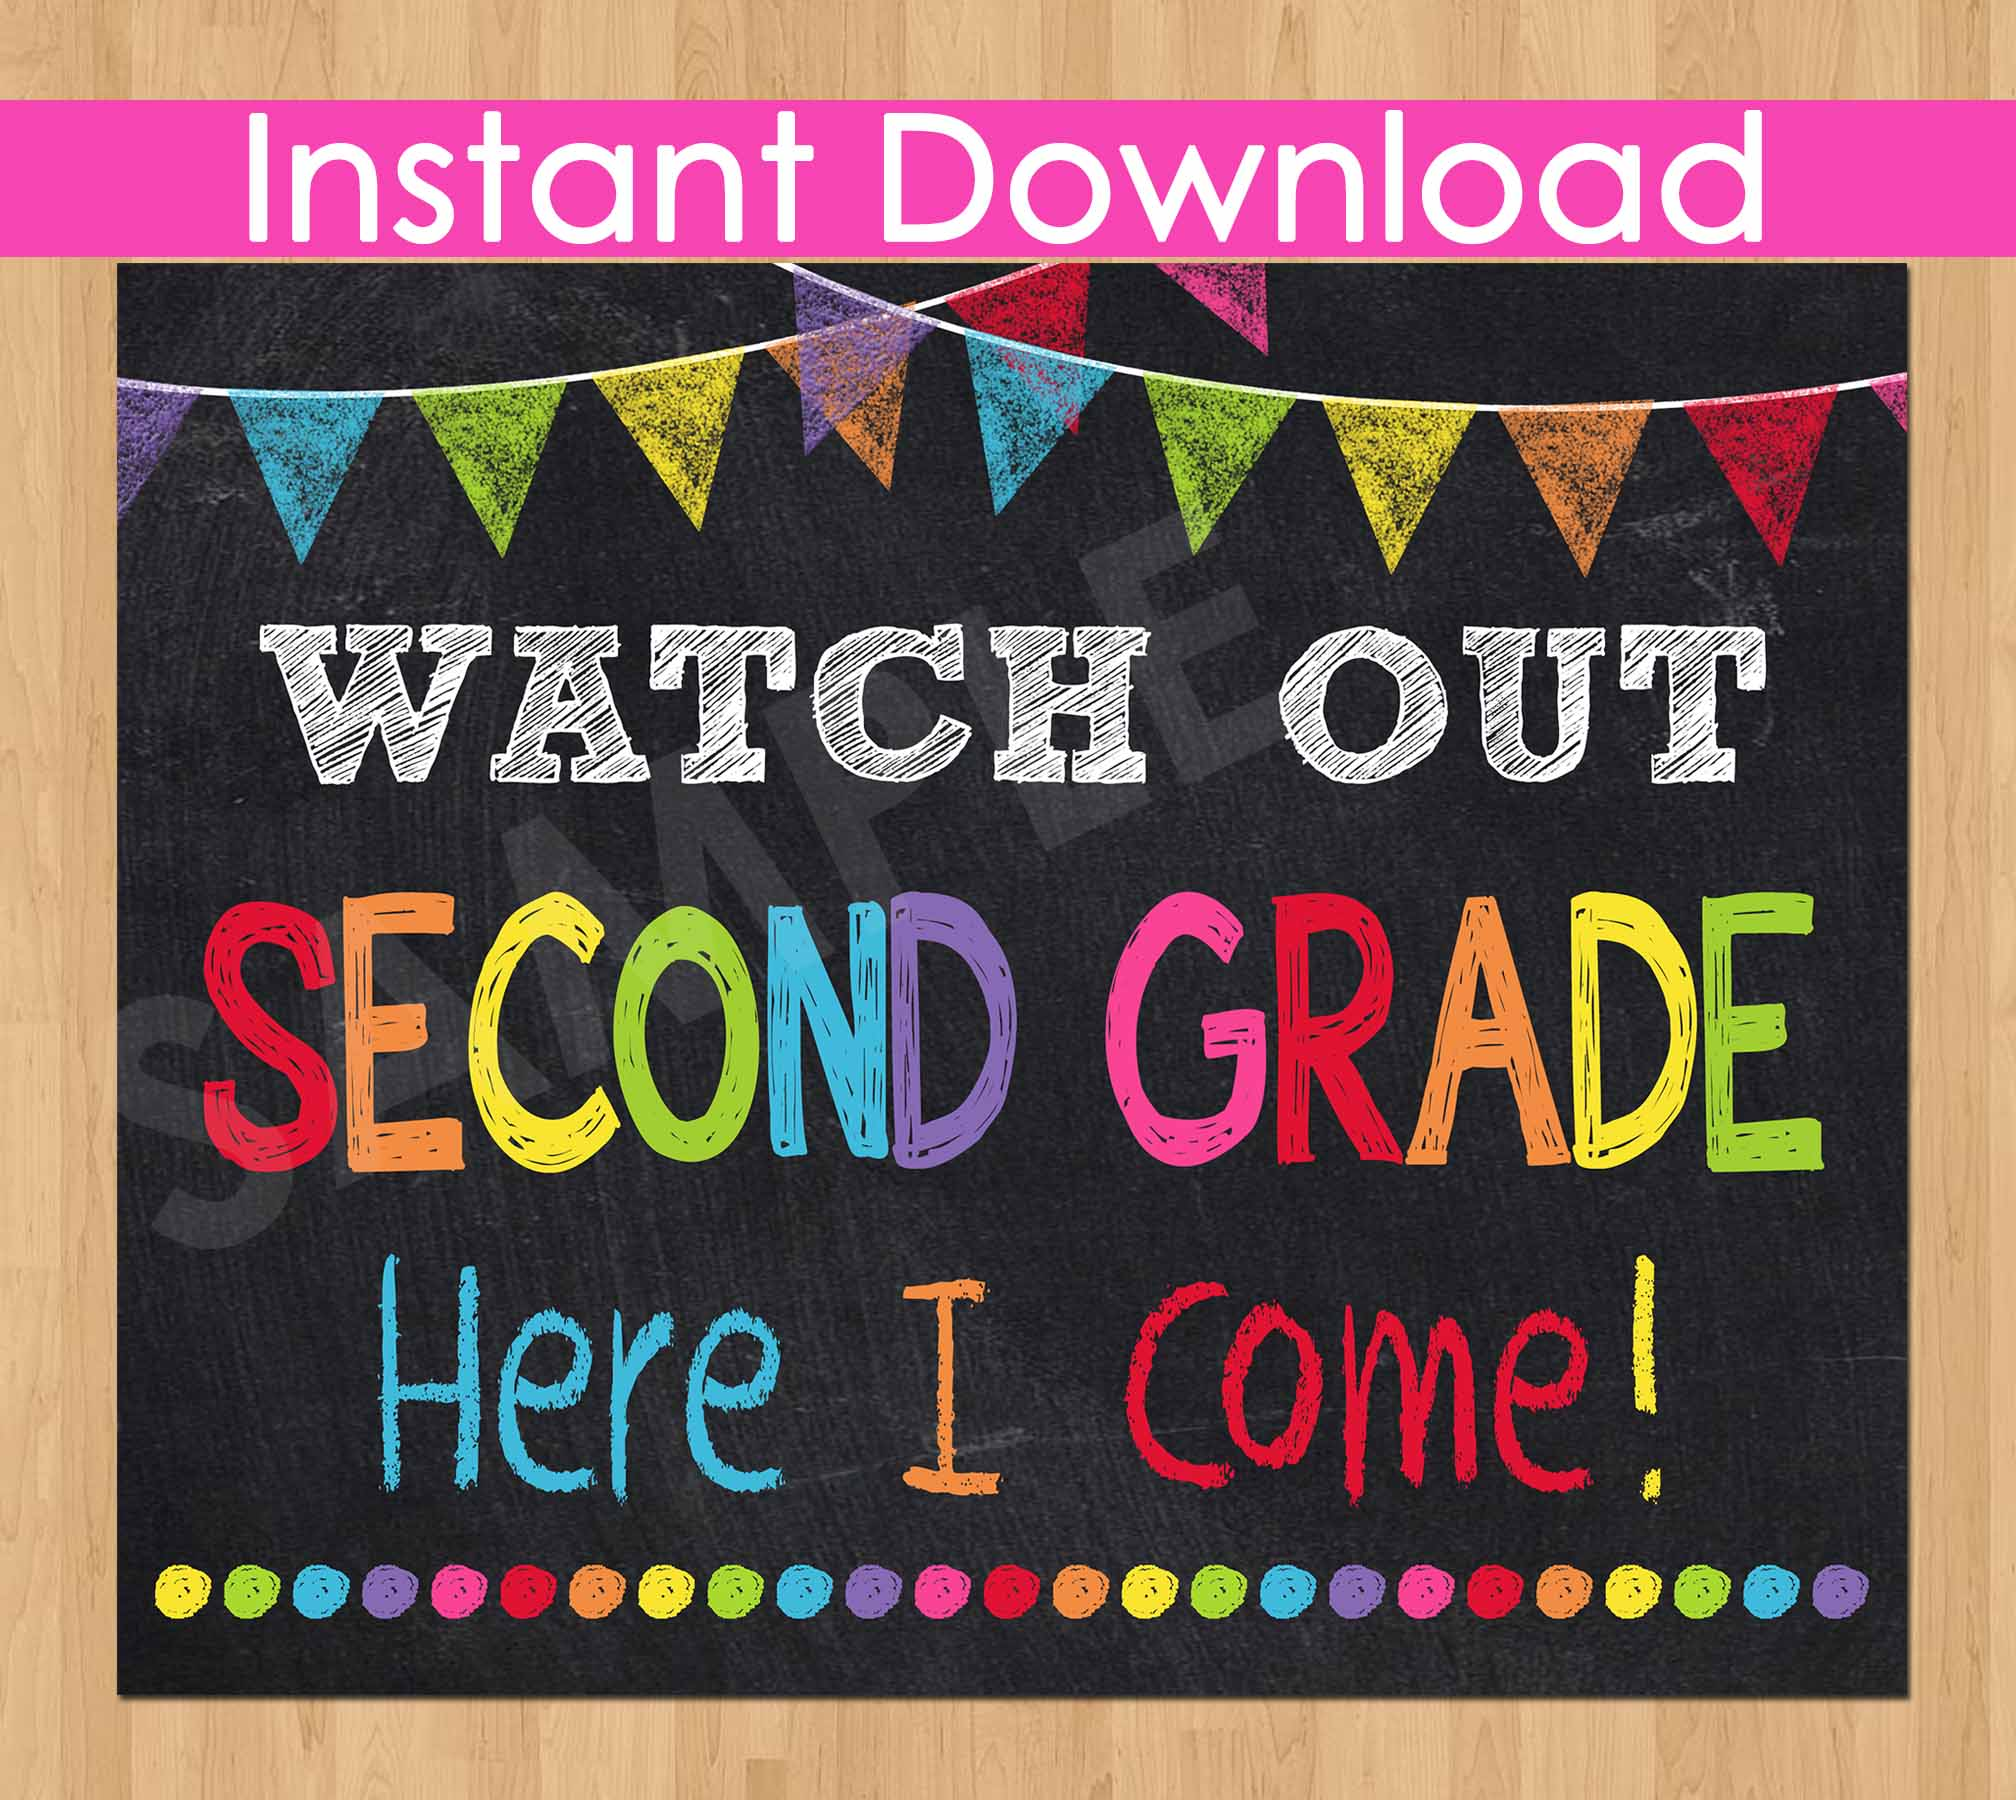 First Day of Second Grade Sign INSTANT DOWNLOAD, Watch Out Second Grade Here I Come Sign,Back to School Chalkboard Sign Printable Photo Prop